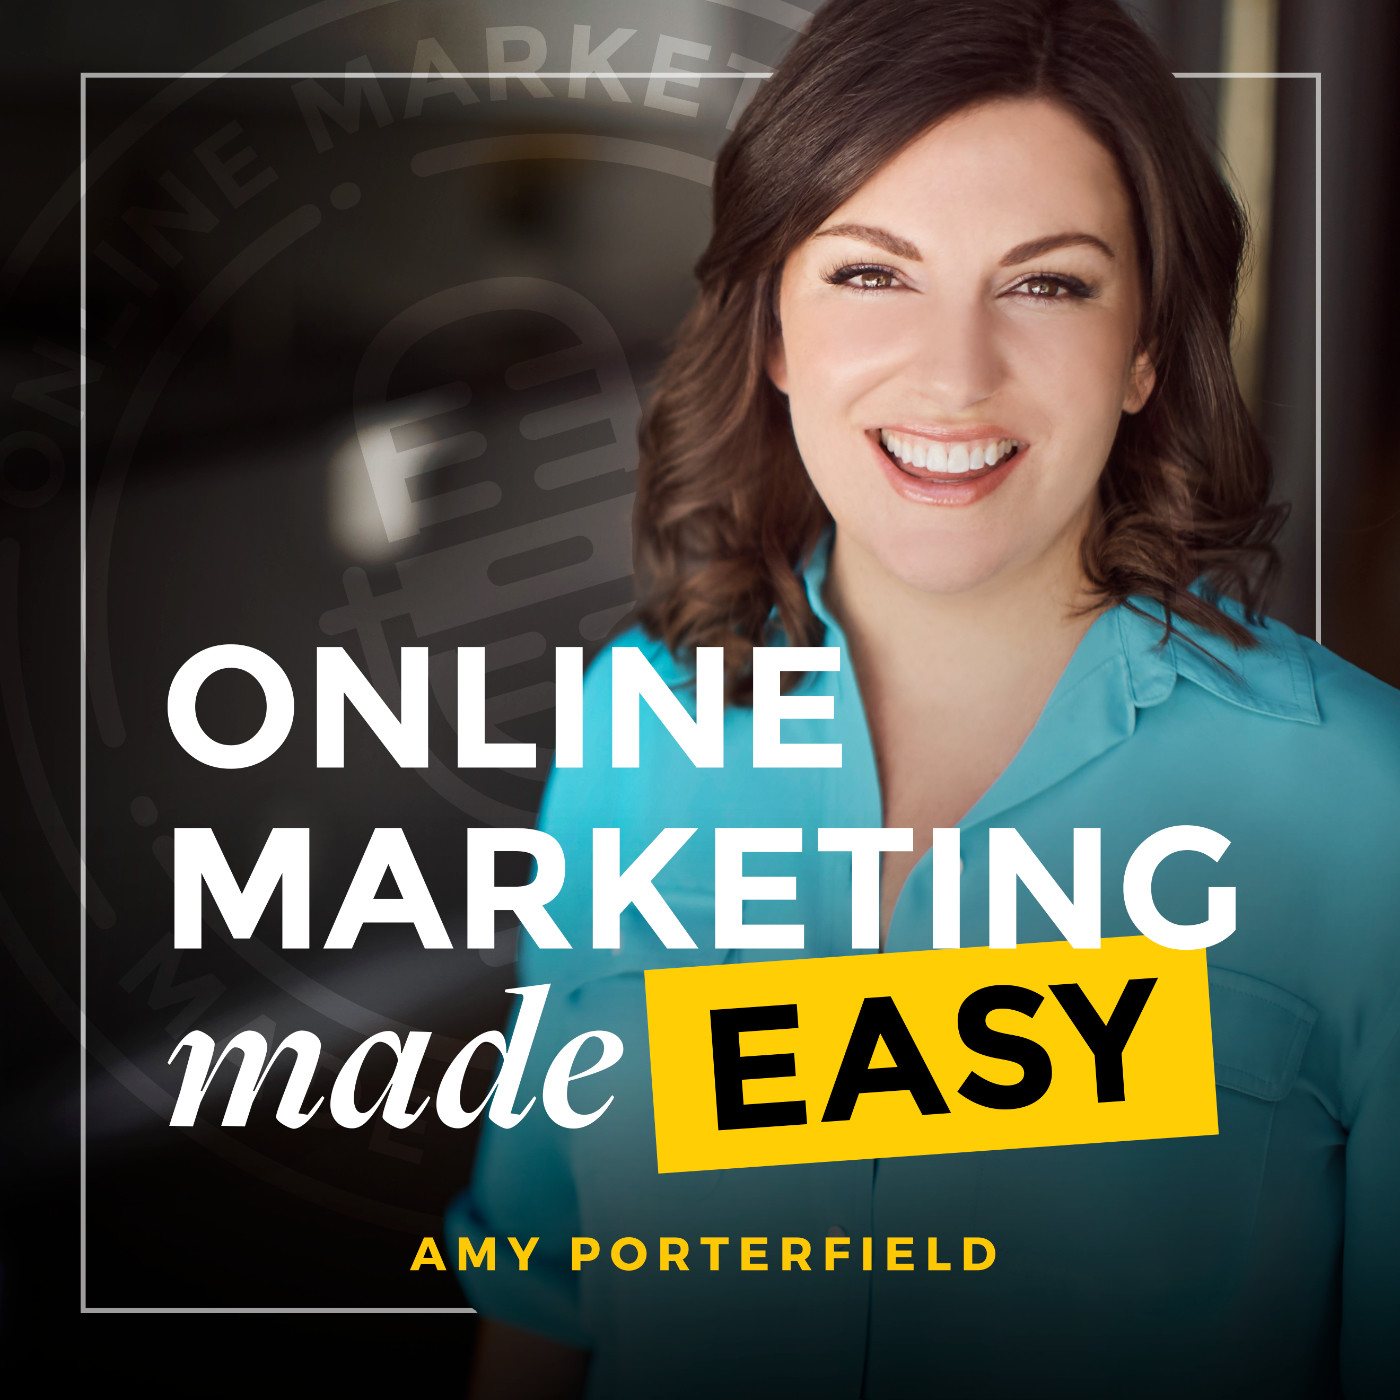 amy-porterfield.jpg